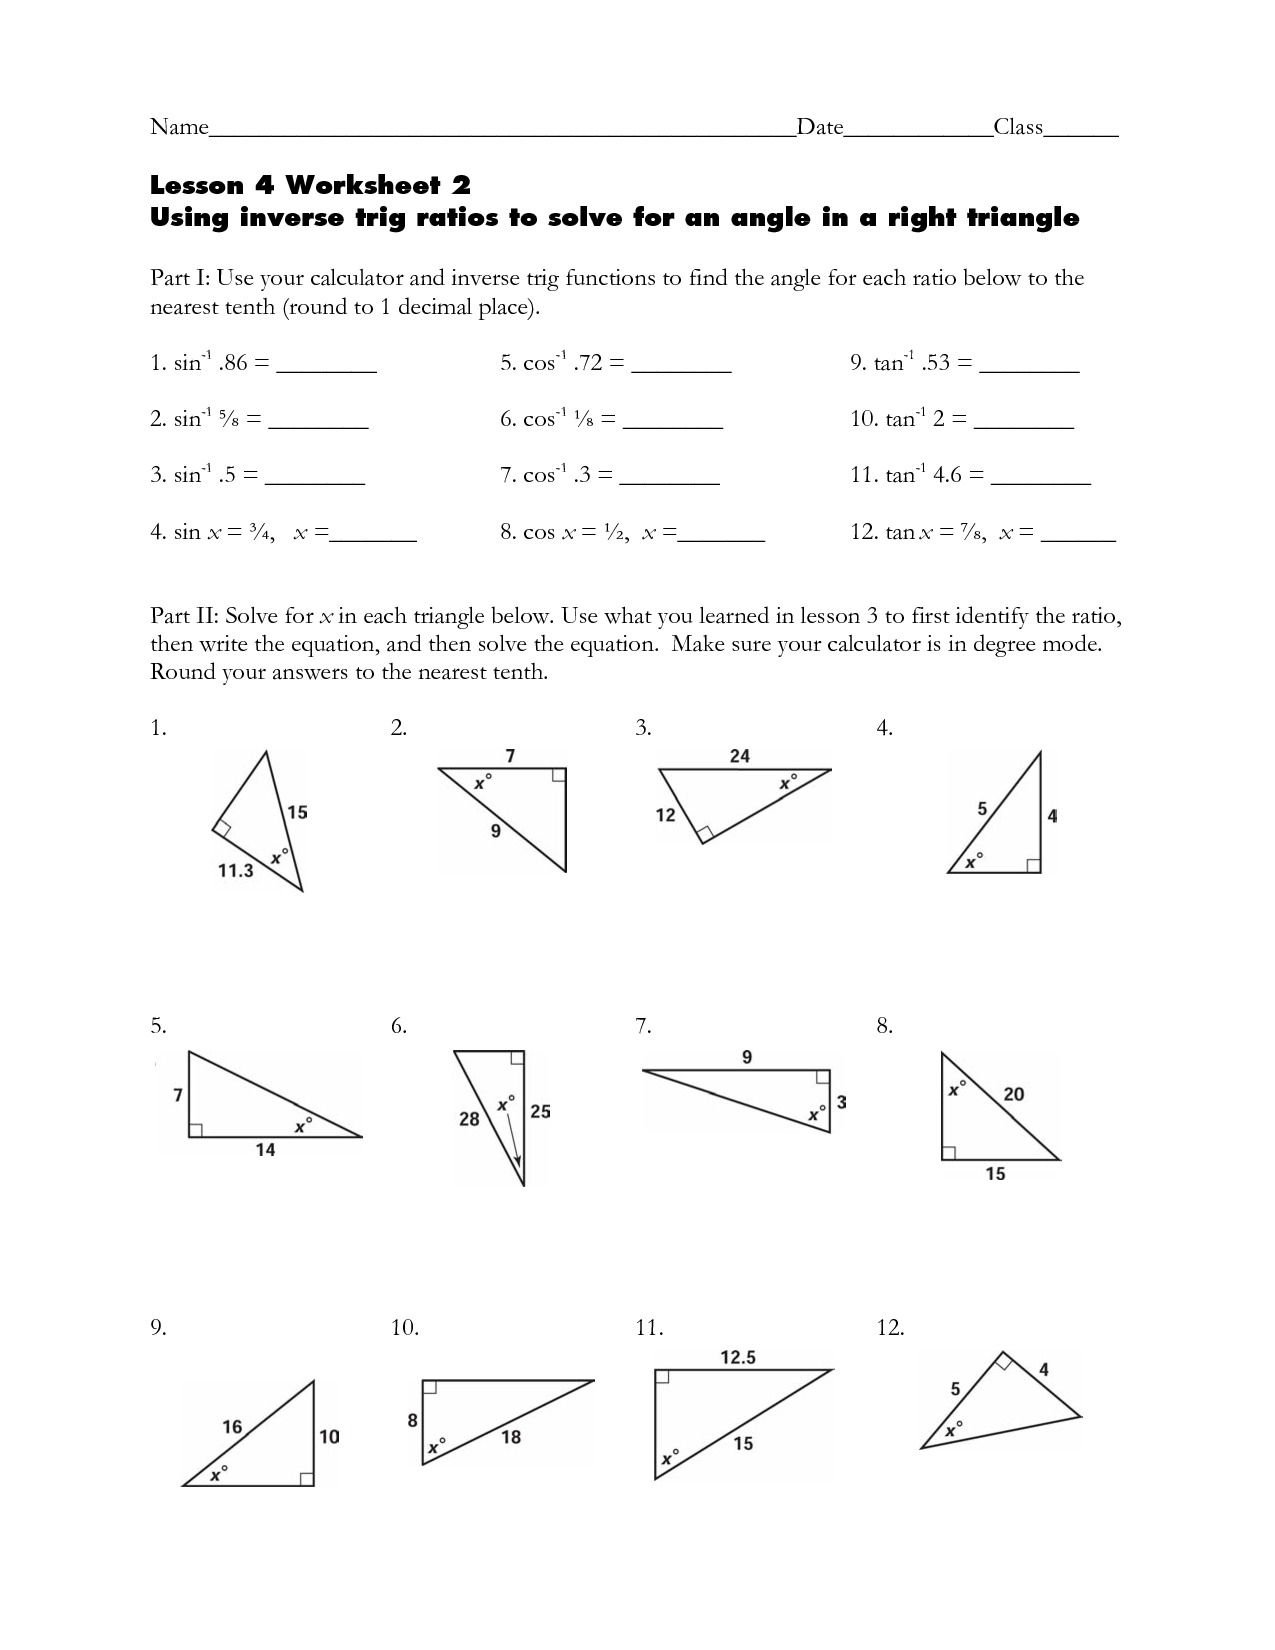 Inverse Trig Ratios Right Triangle Trigonometry Worksheet